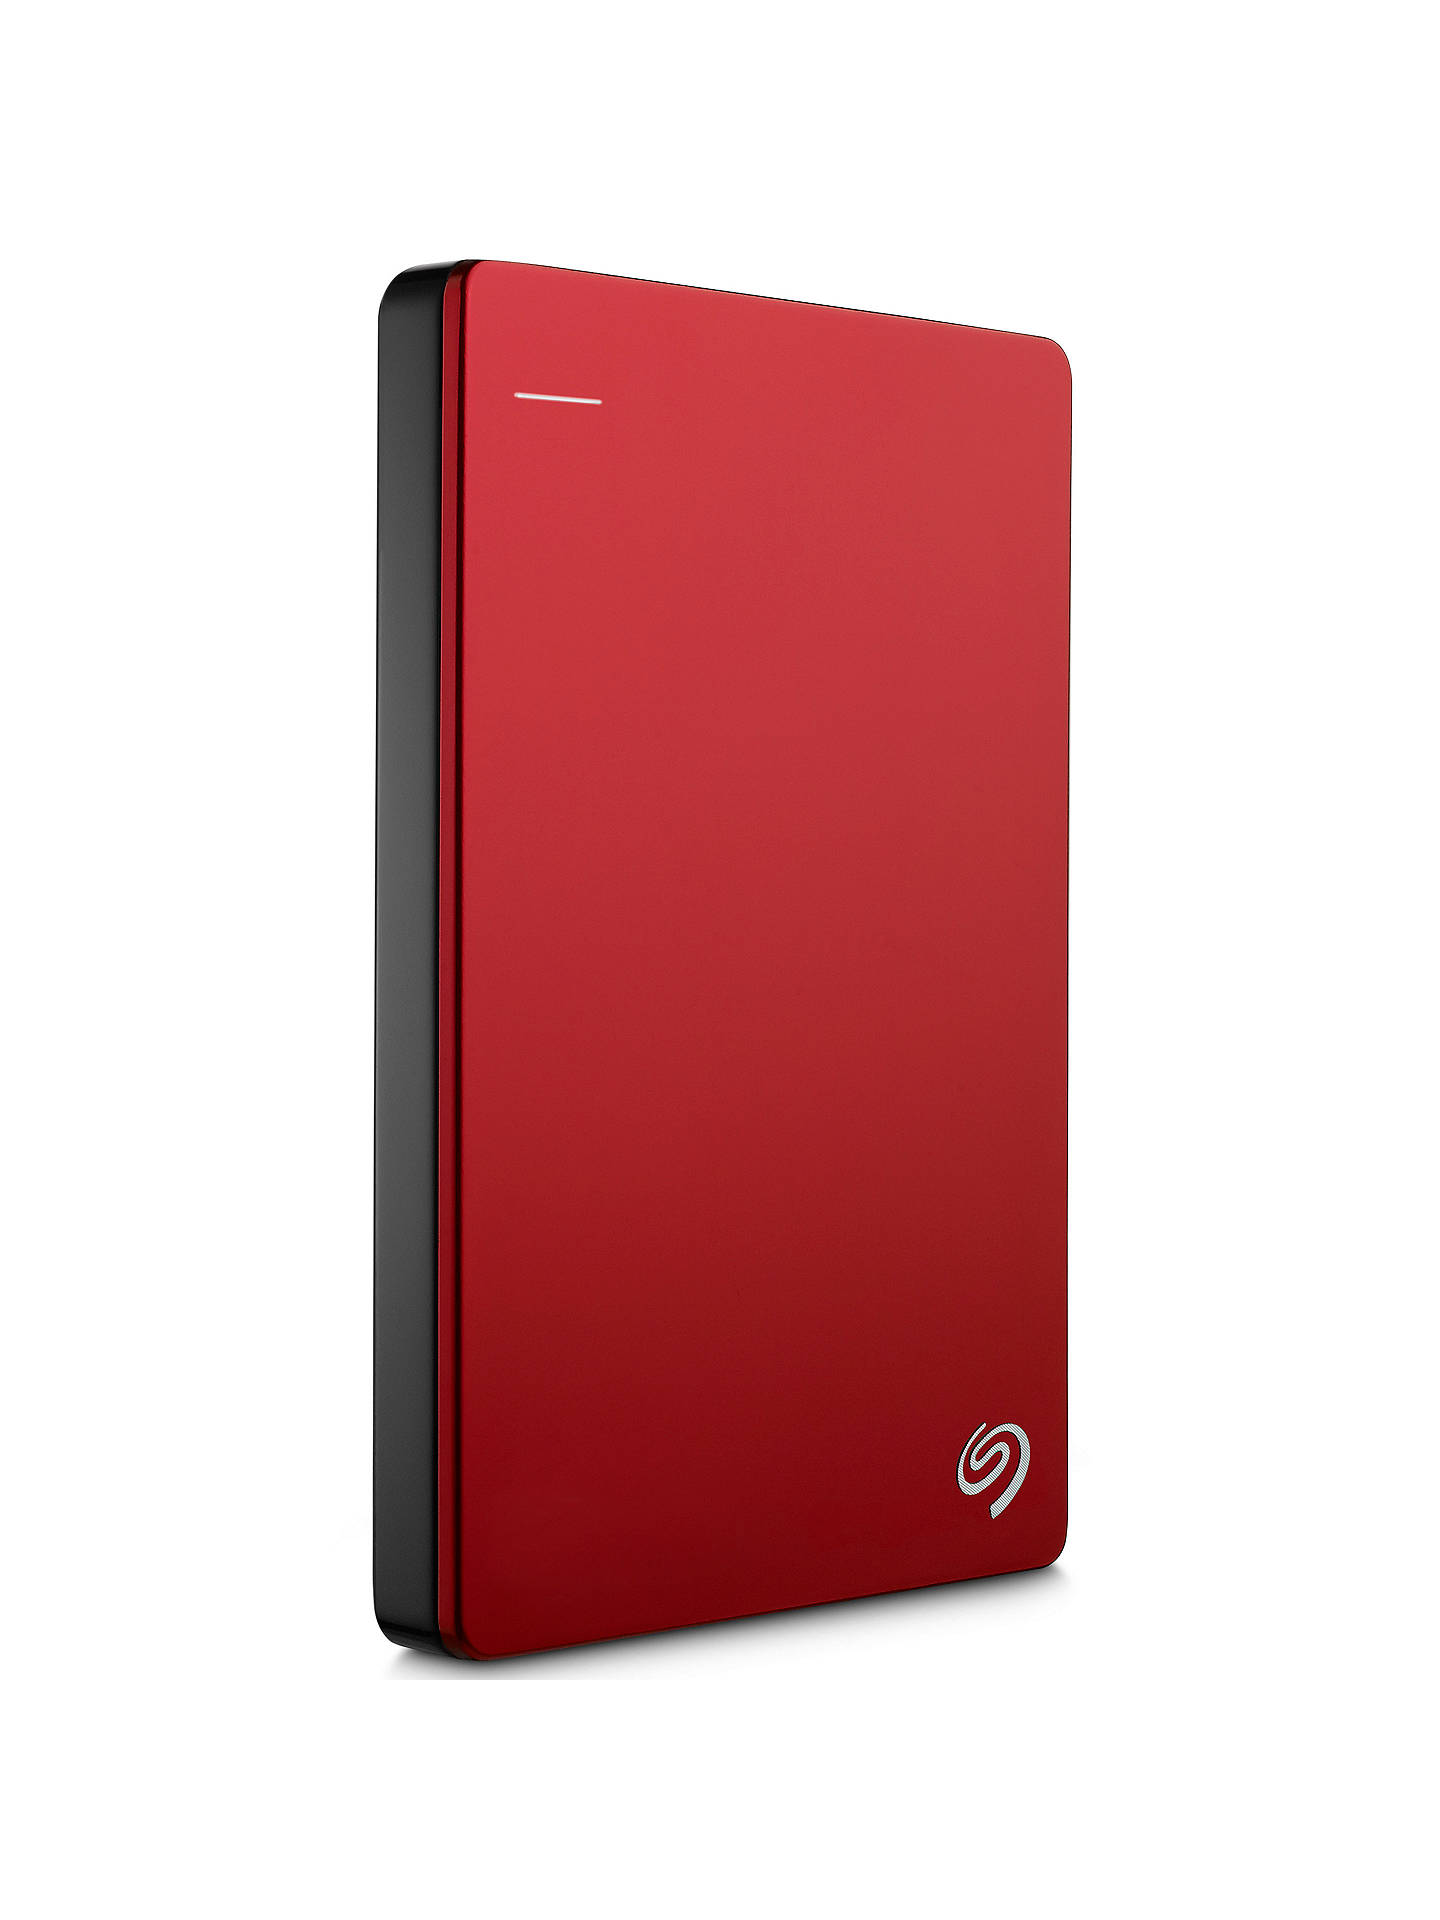 BuySeagate Backup Plus USB 3.0 Portable Drive, 1TB, Red Online at johnlewis.com